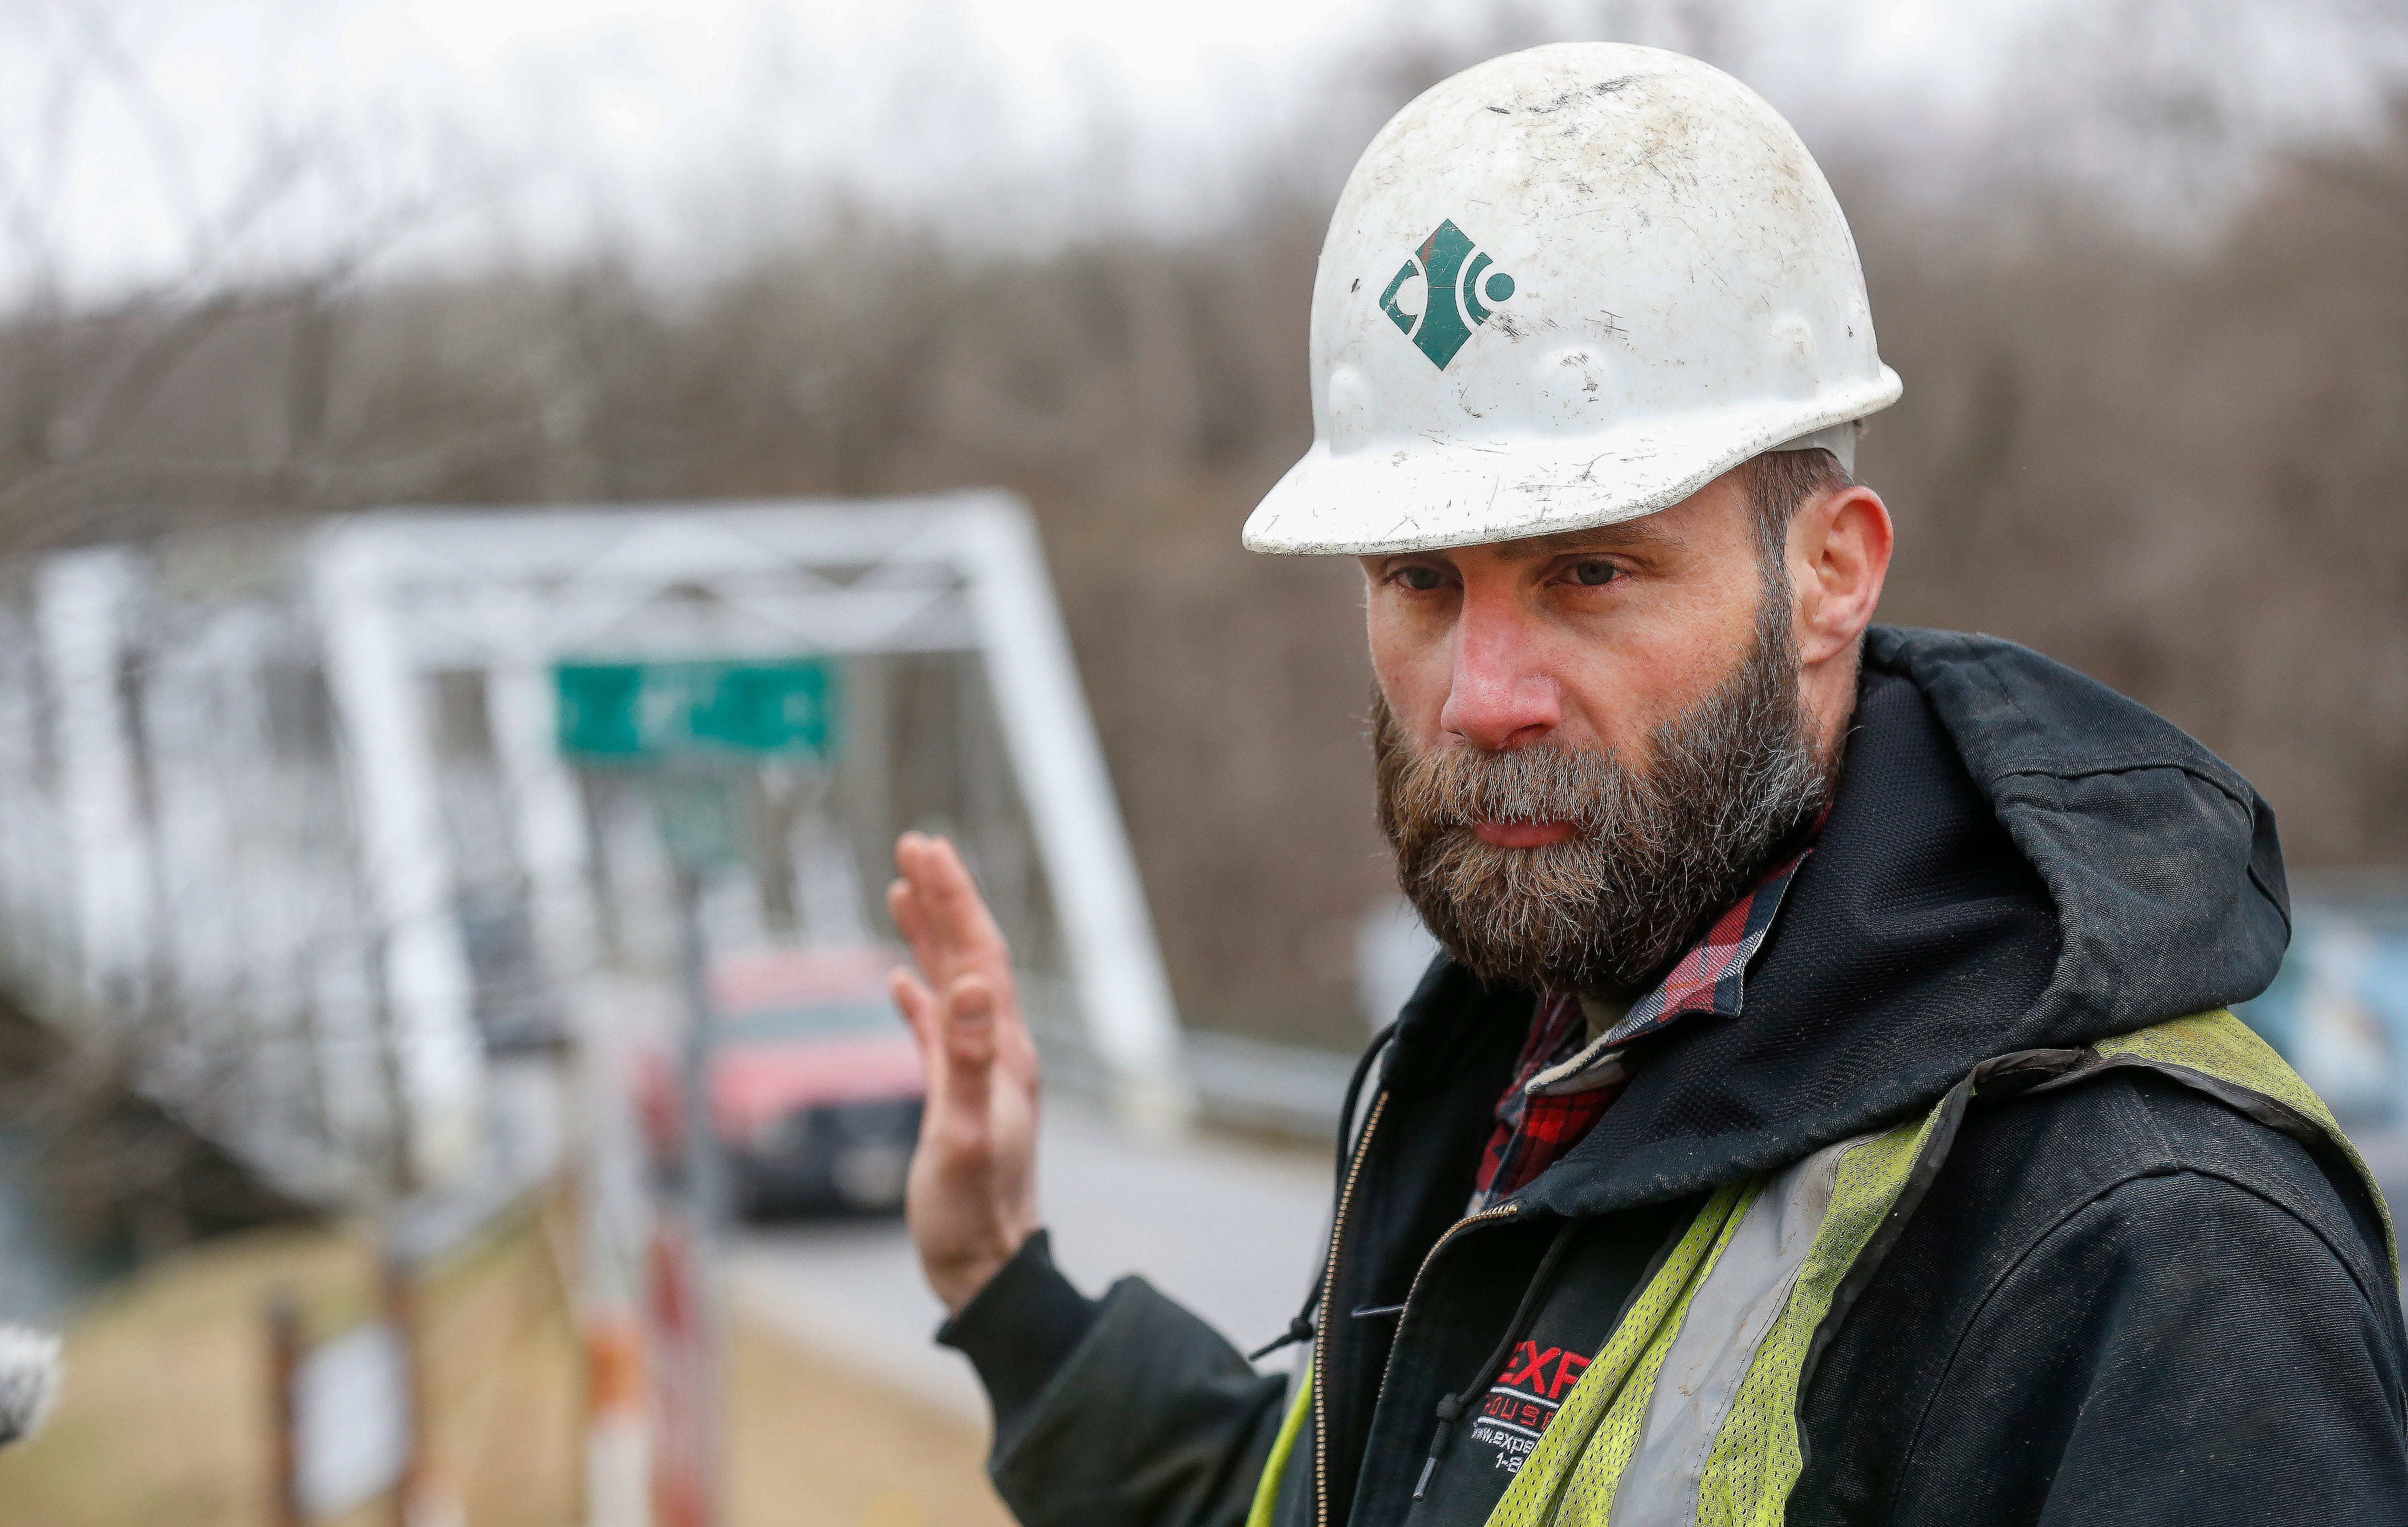 Gabriel Matyiko, of Expert House Movers, talks about the procedure for moving the Ozark Mill back onto its new foundation on Wednesday, Feb. 20, 2019.